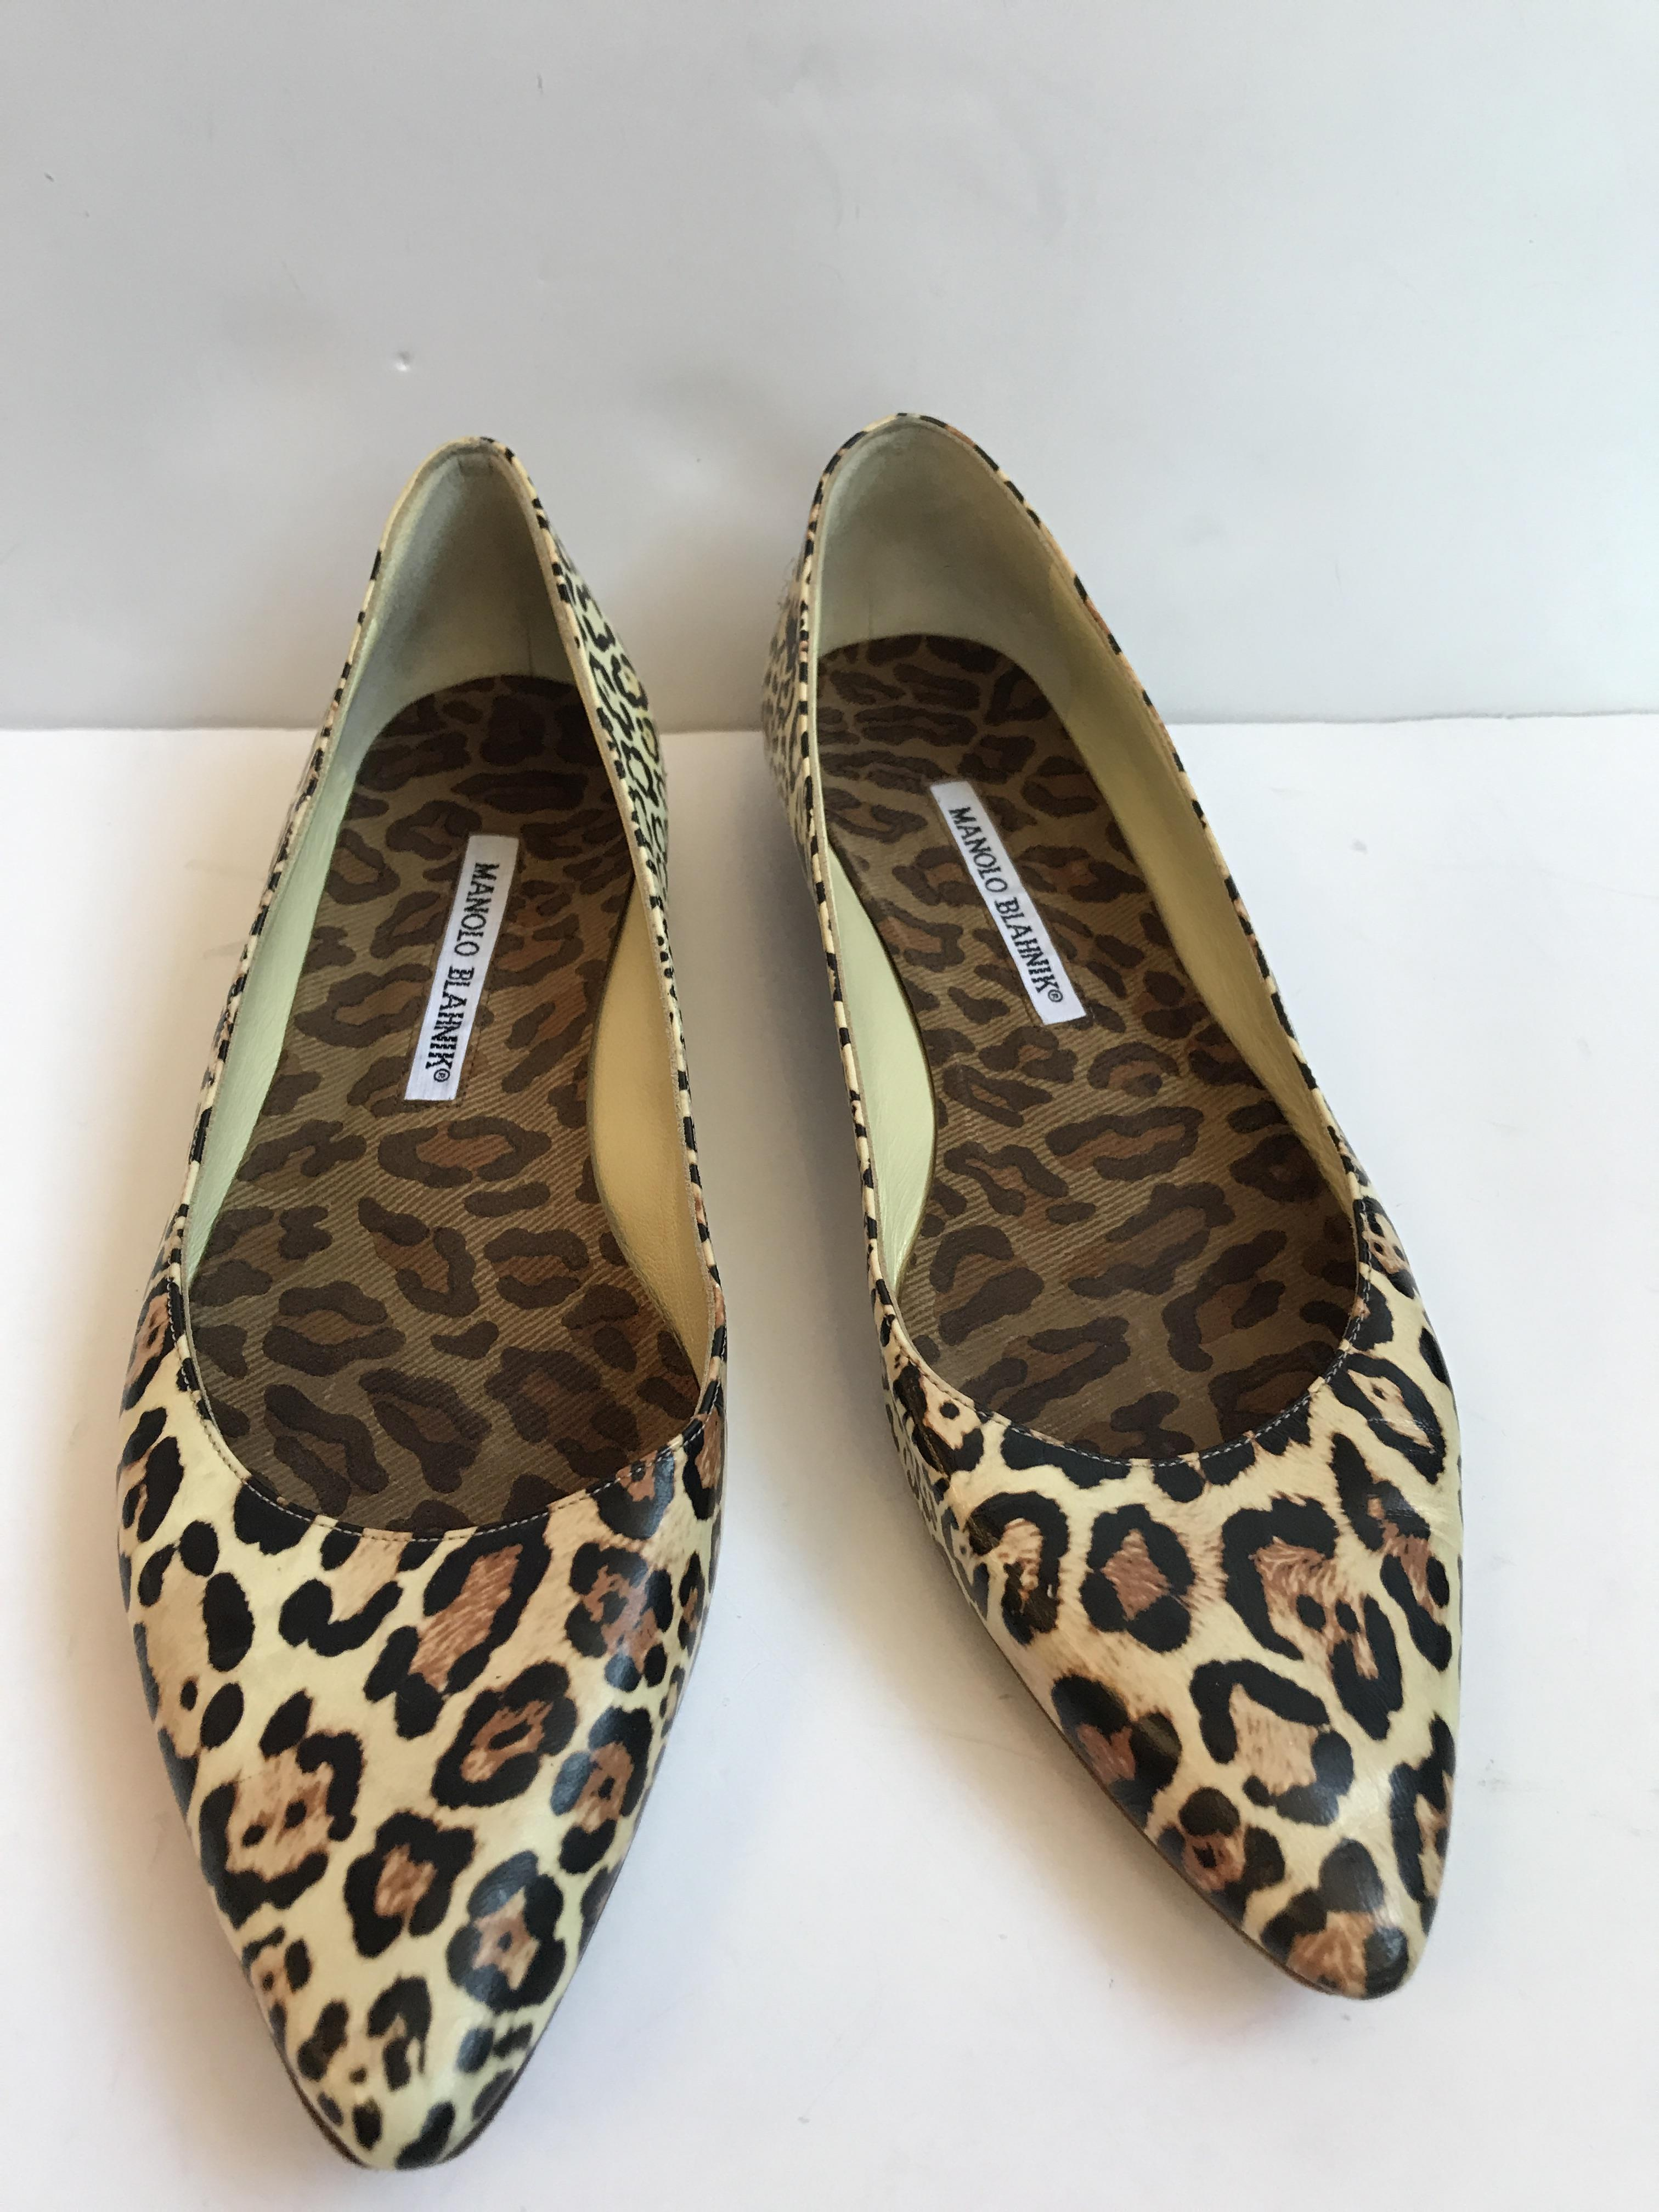 Manolo Blahnik Shoes Price: $136.99